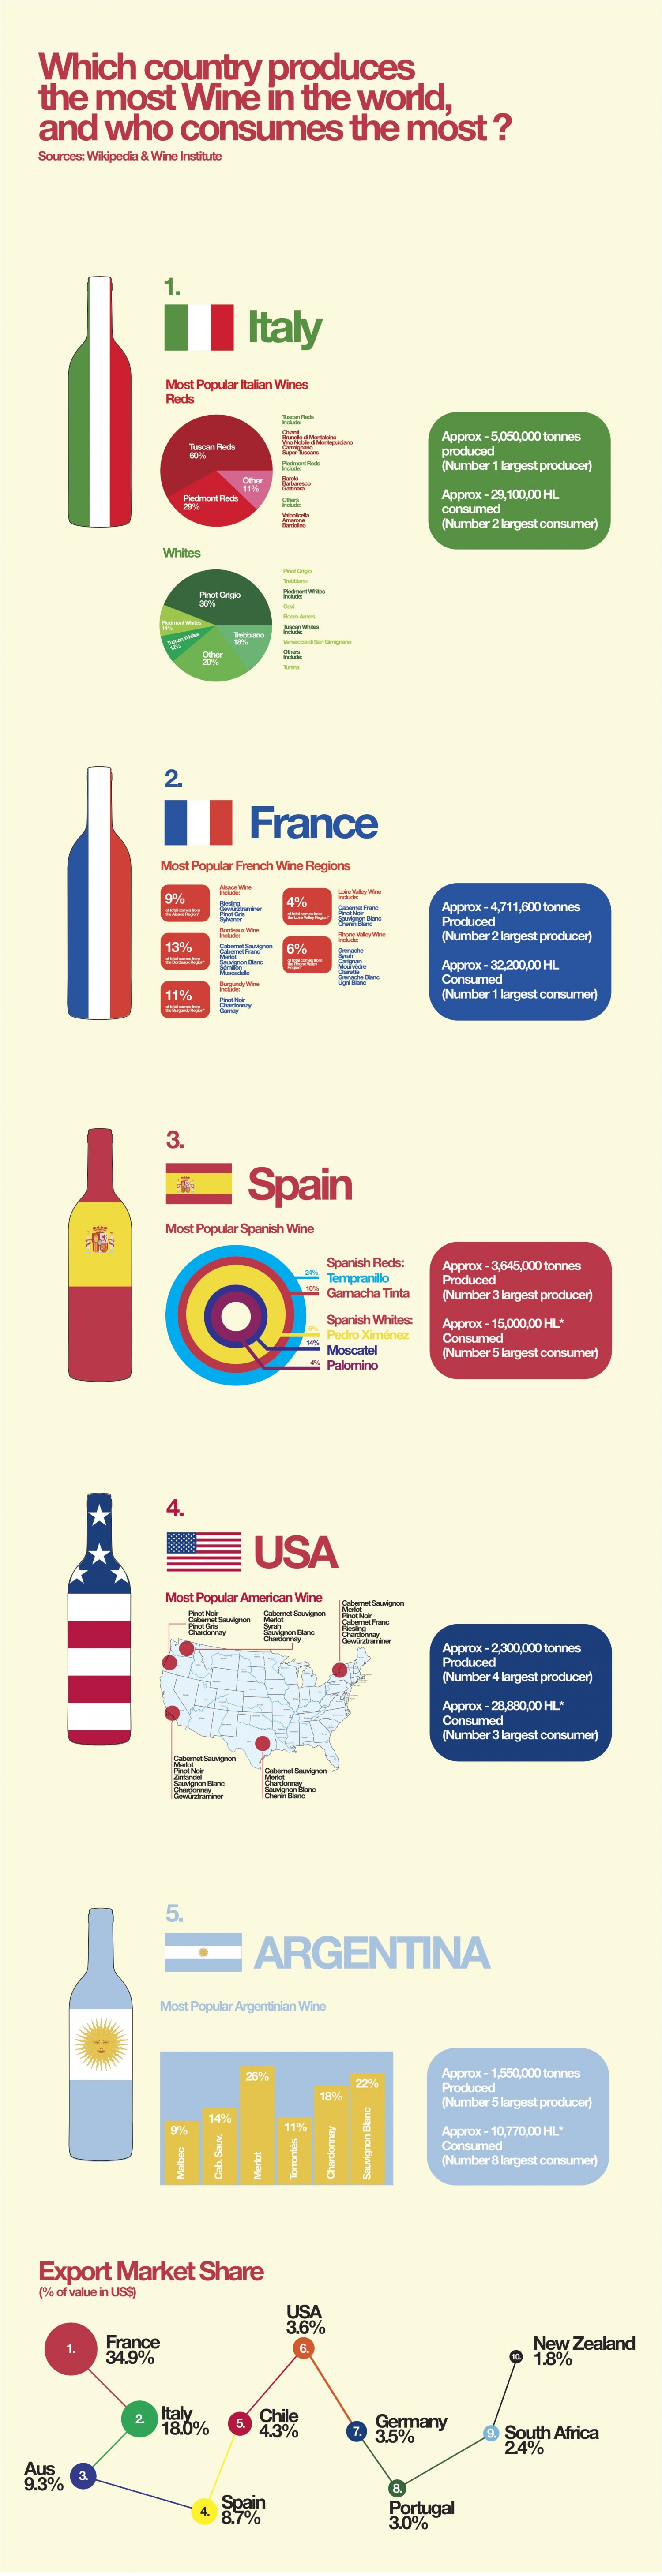 12. Top 3 Wine producers